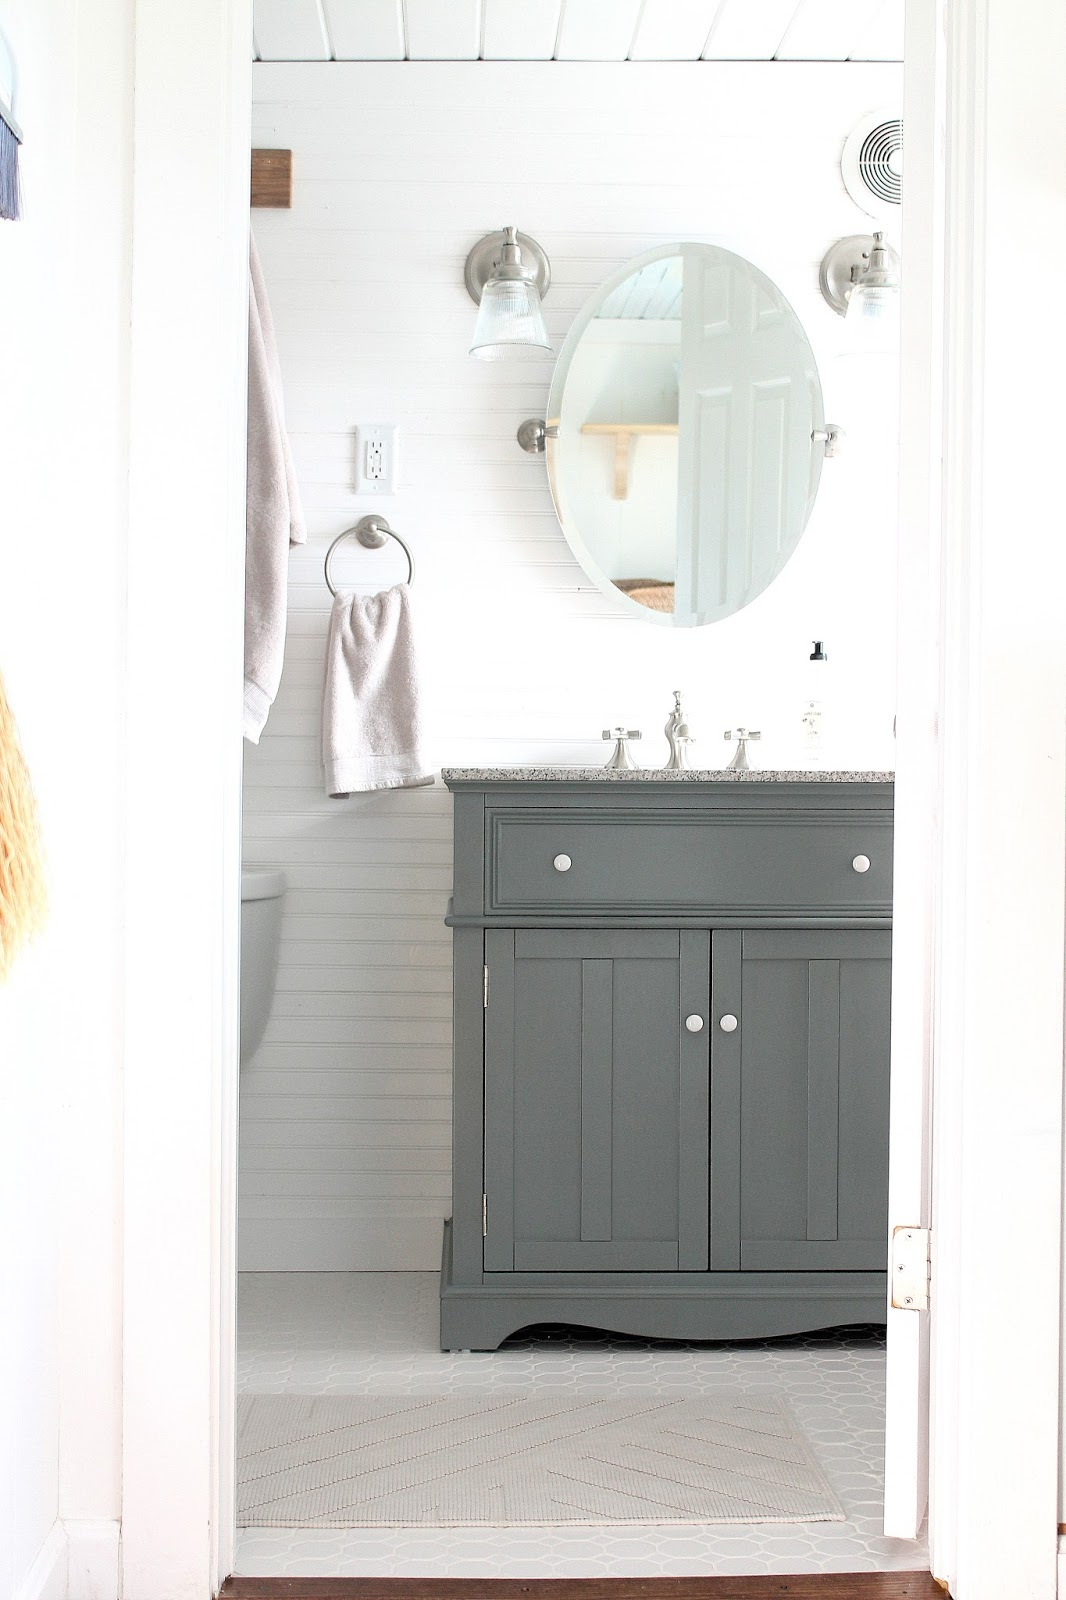 Keeping It Cozy: The Downstairs Bathroom Remodel